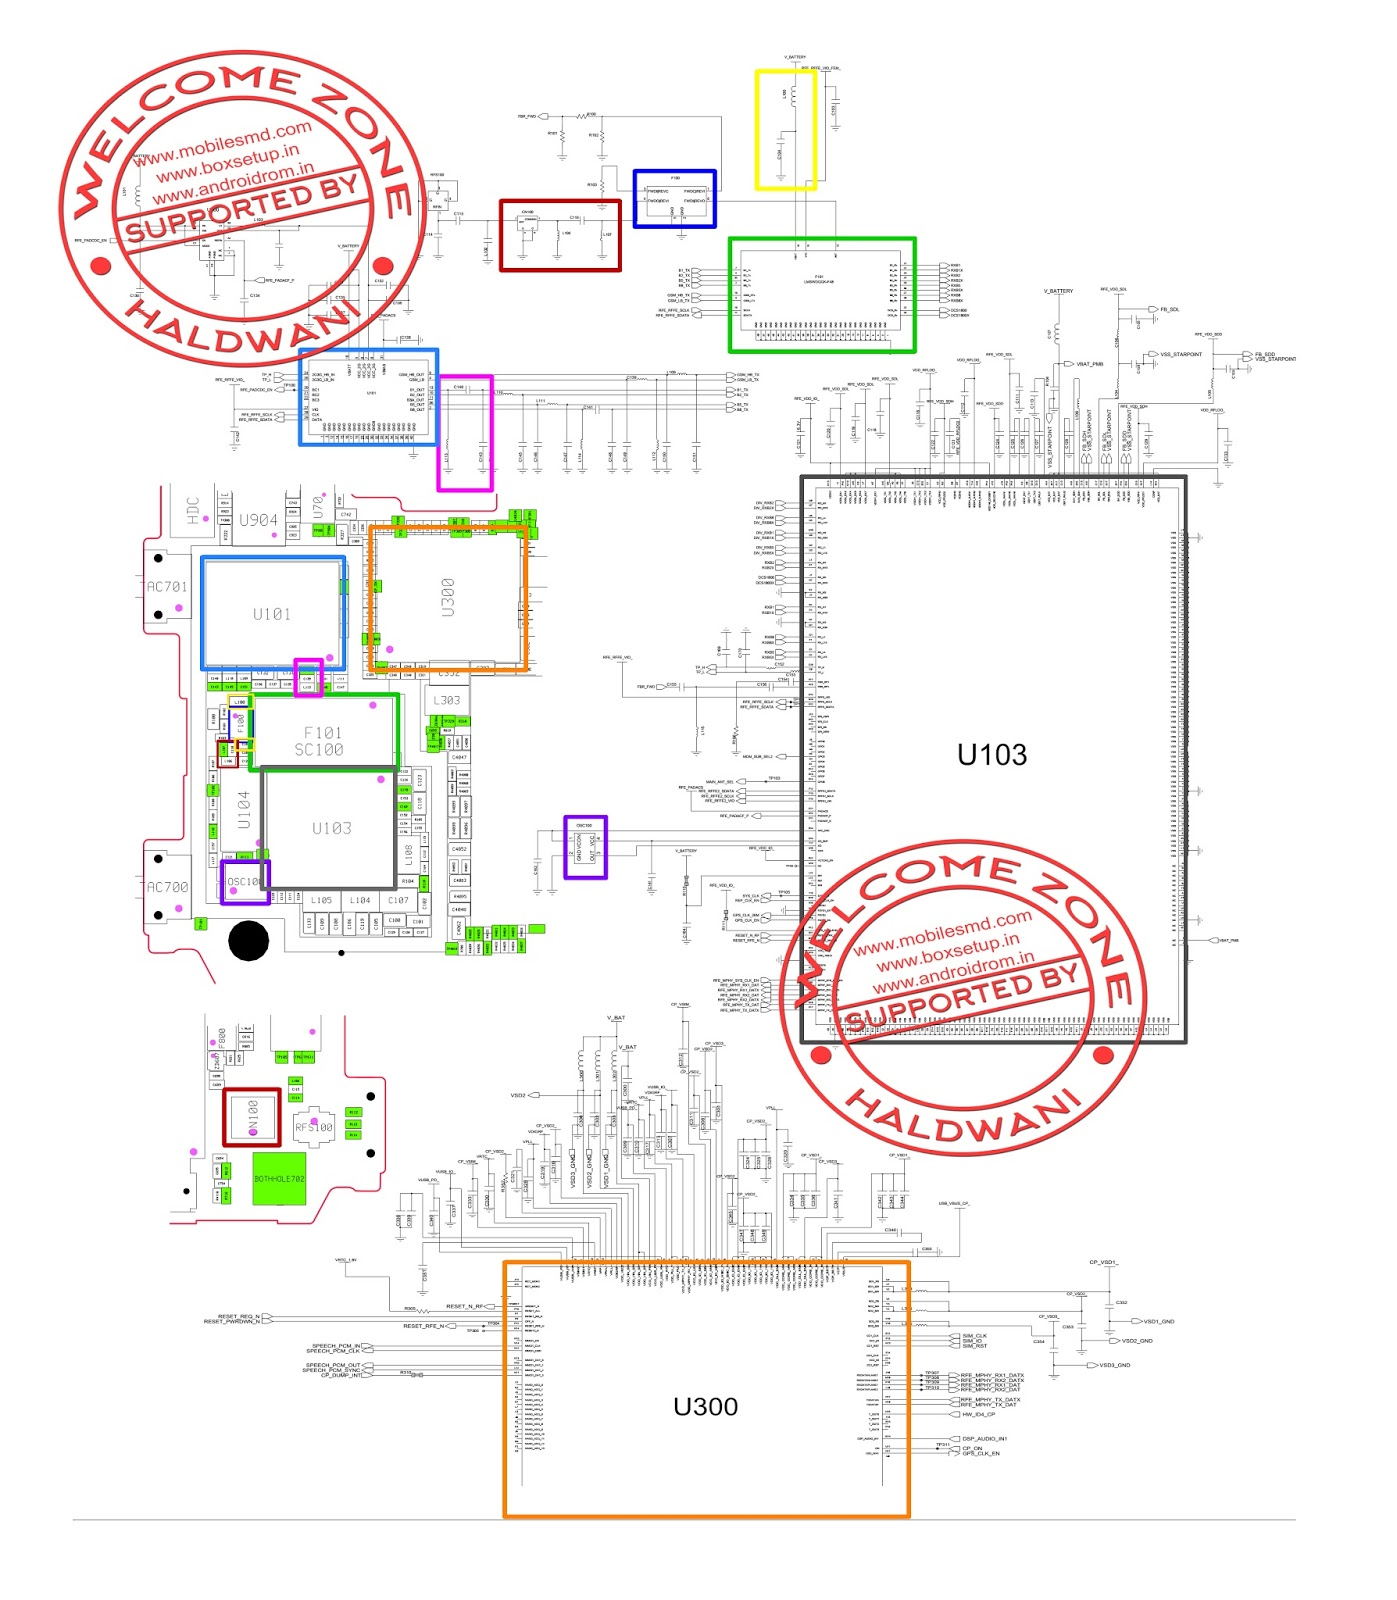 small resolution of emg hsh wiring diagram otax vlx91 for hsh pick up diagram single coil pickup wiring diagram hsh stratocaster wiring diagram